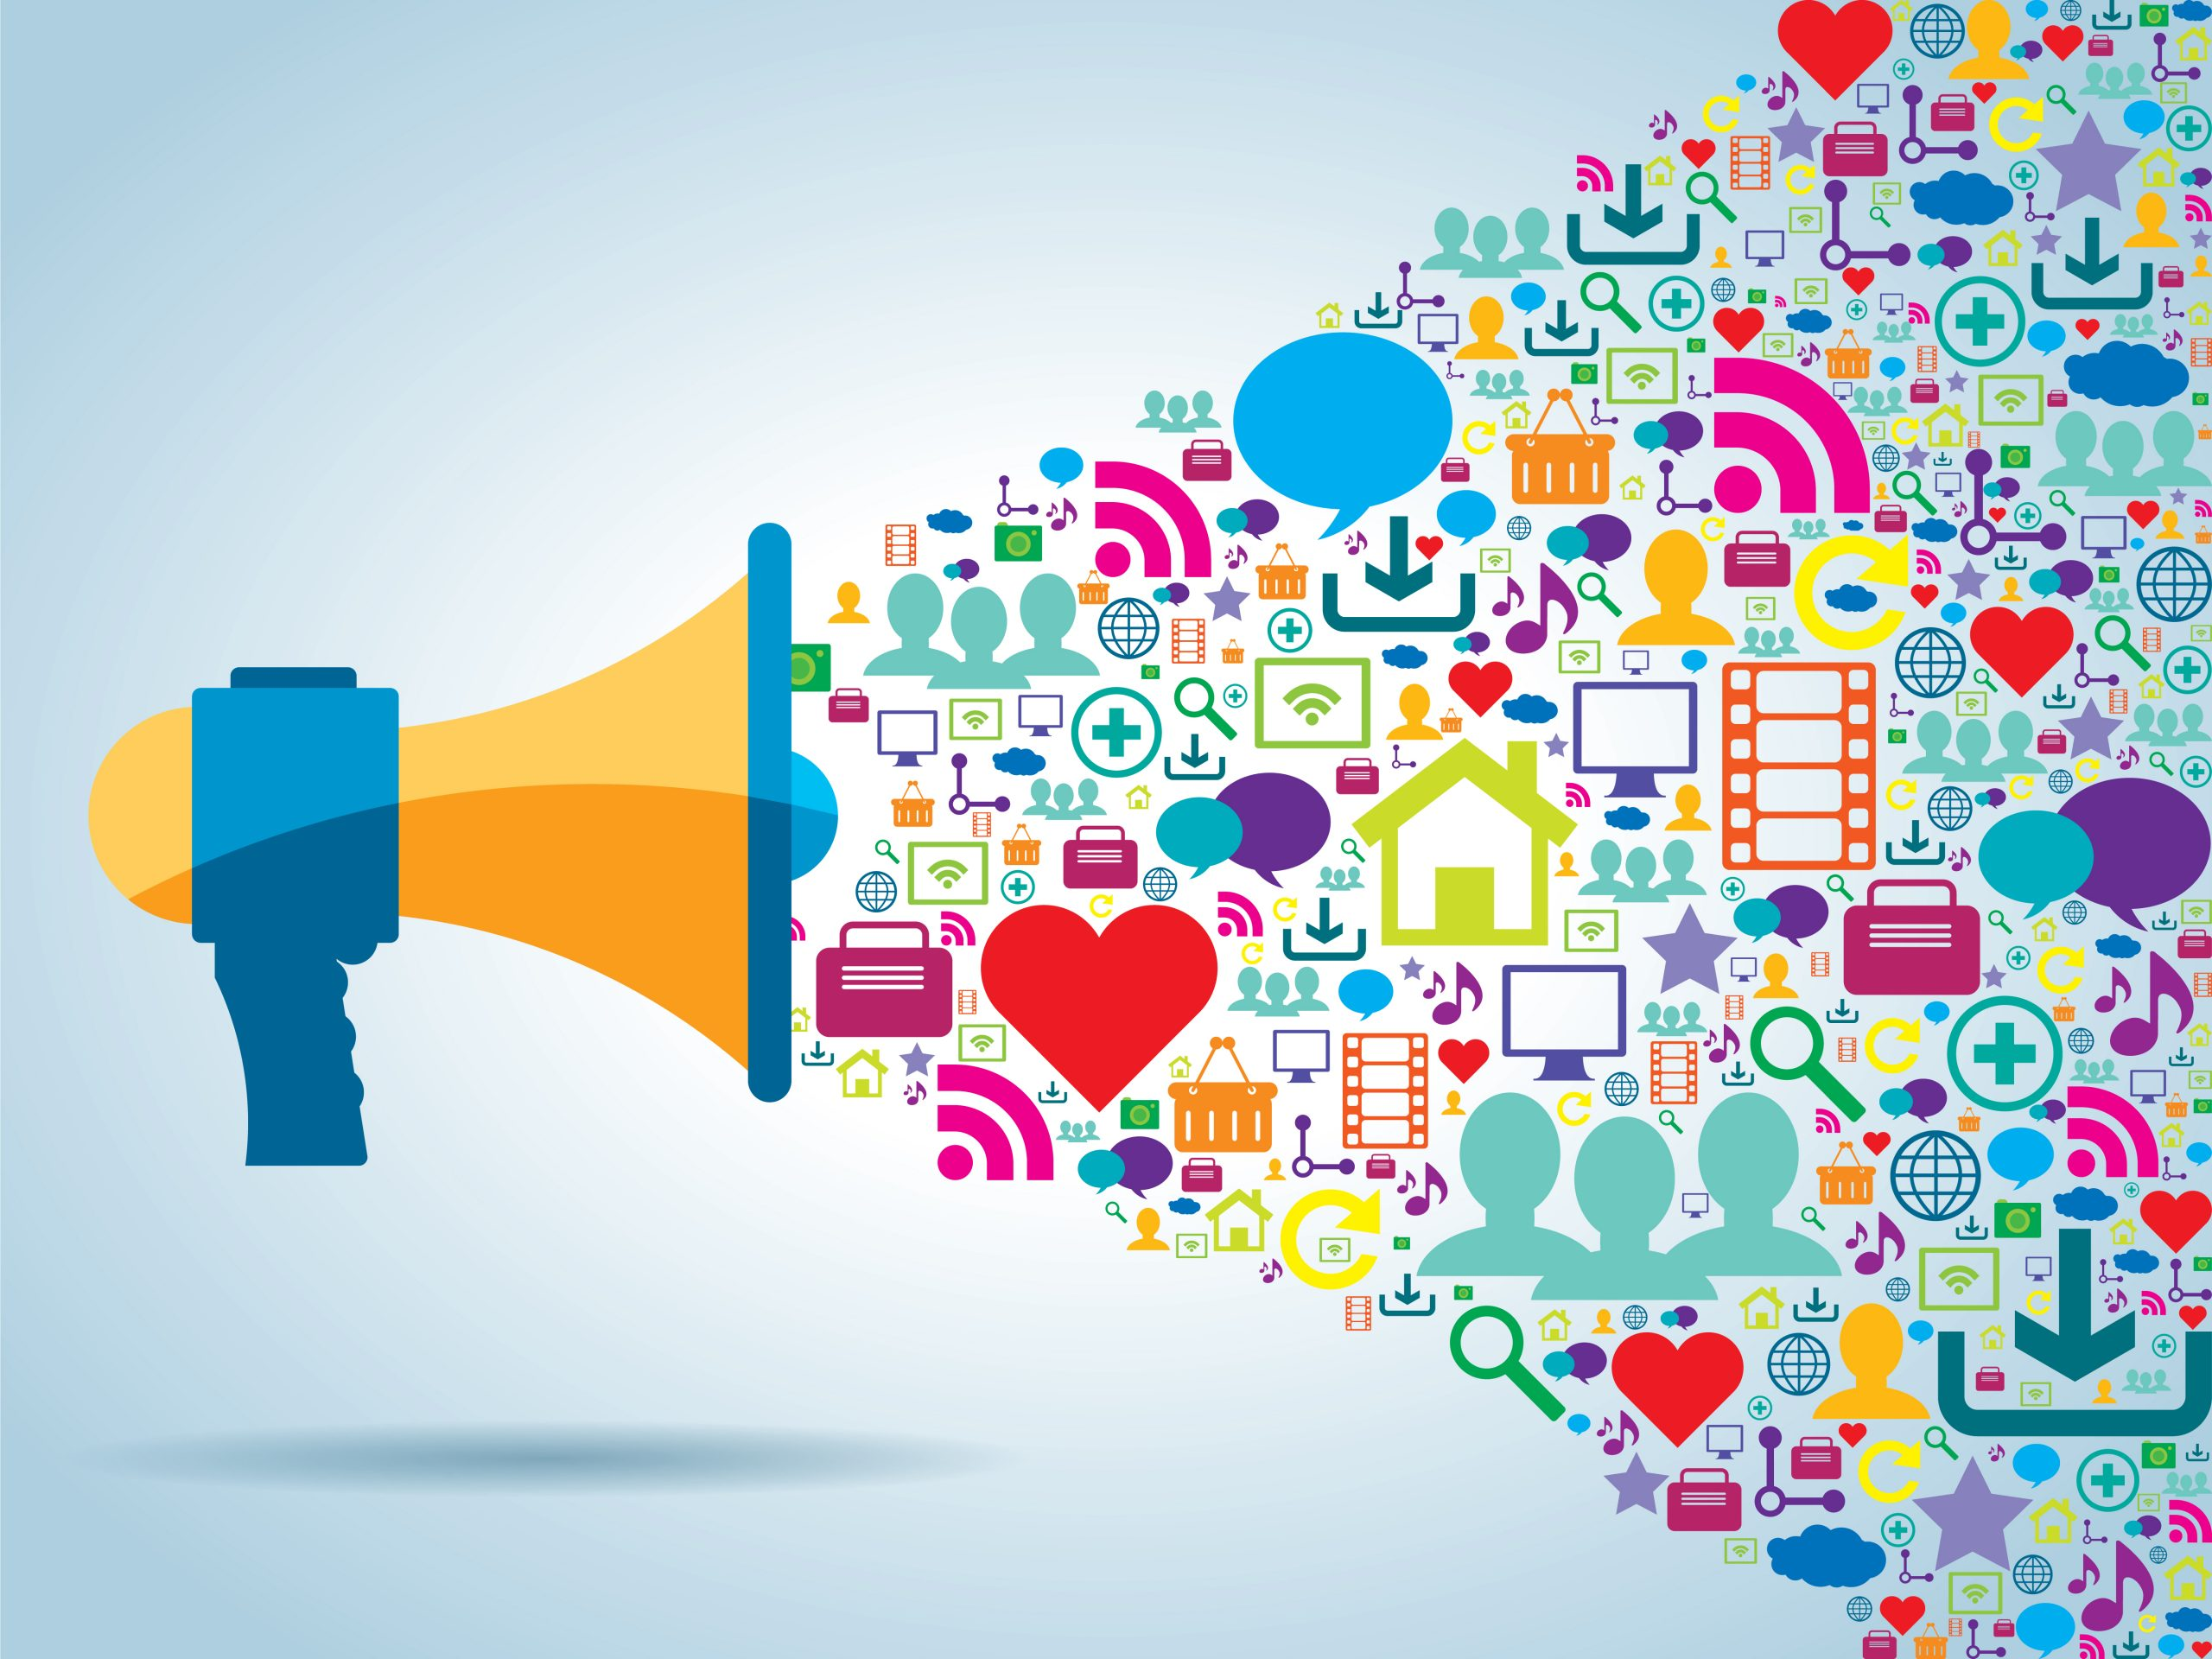 Digital Marketing Advice for Novices: What to Do